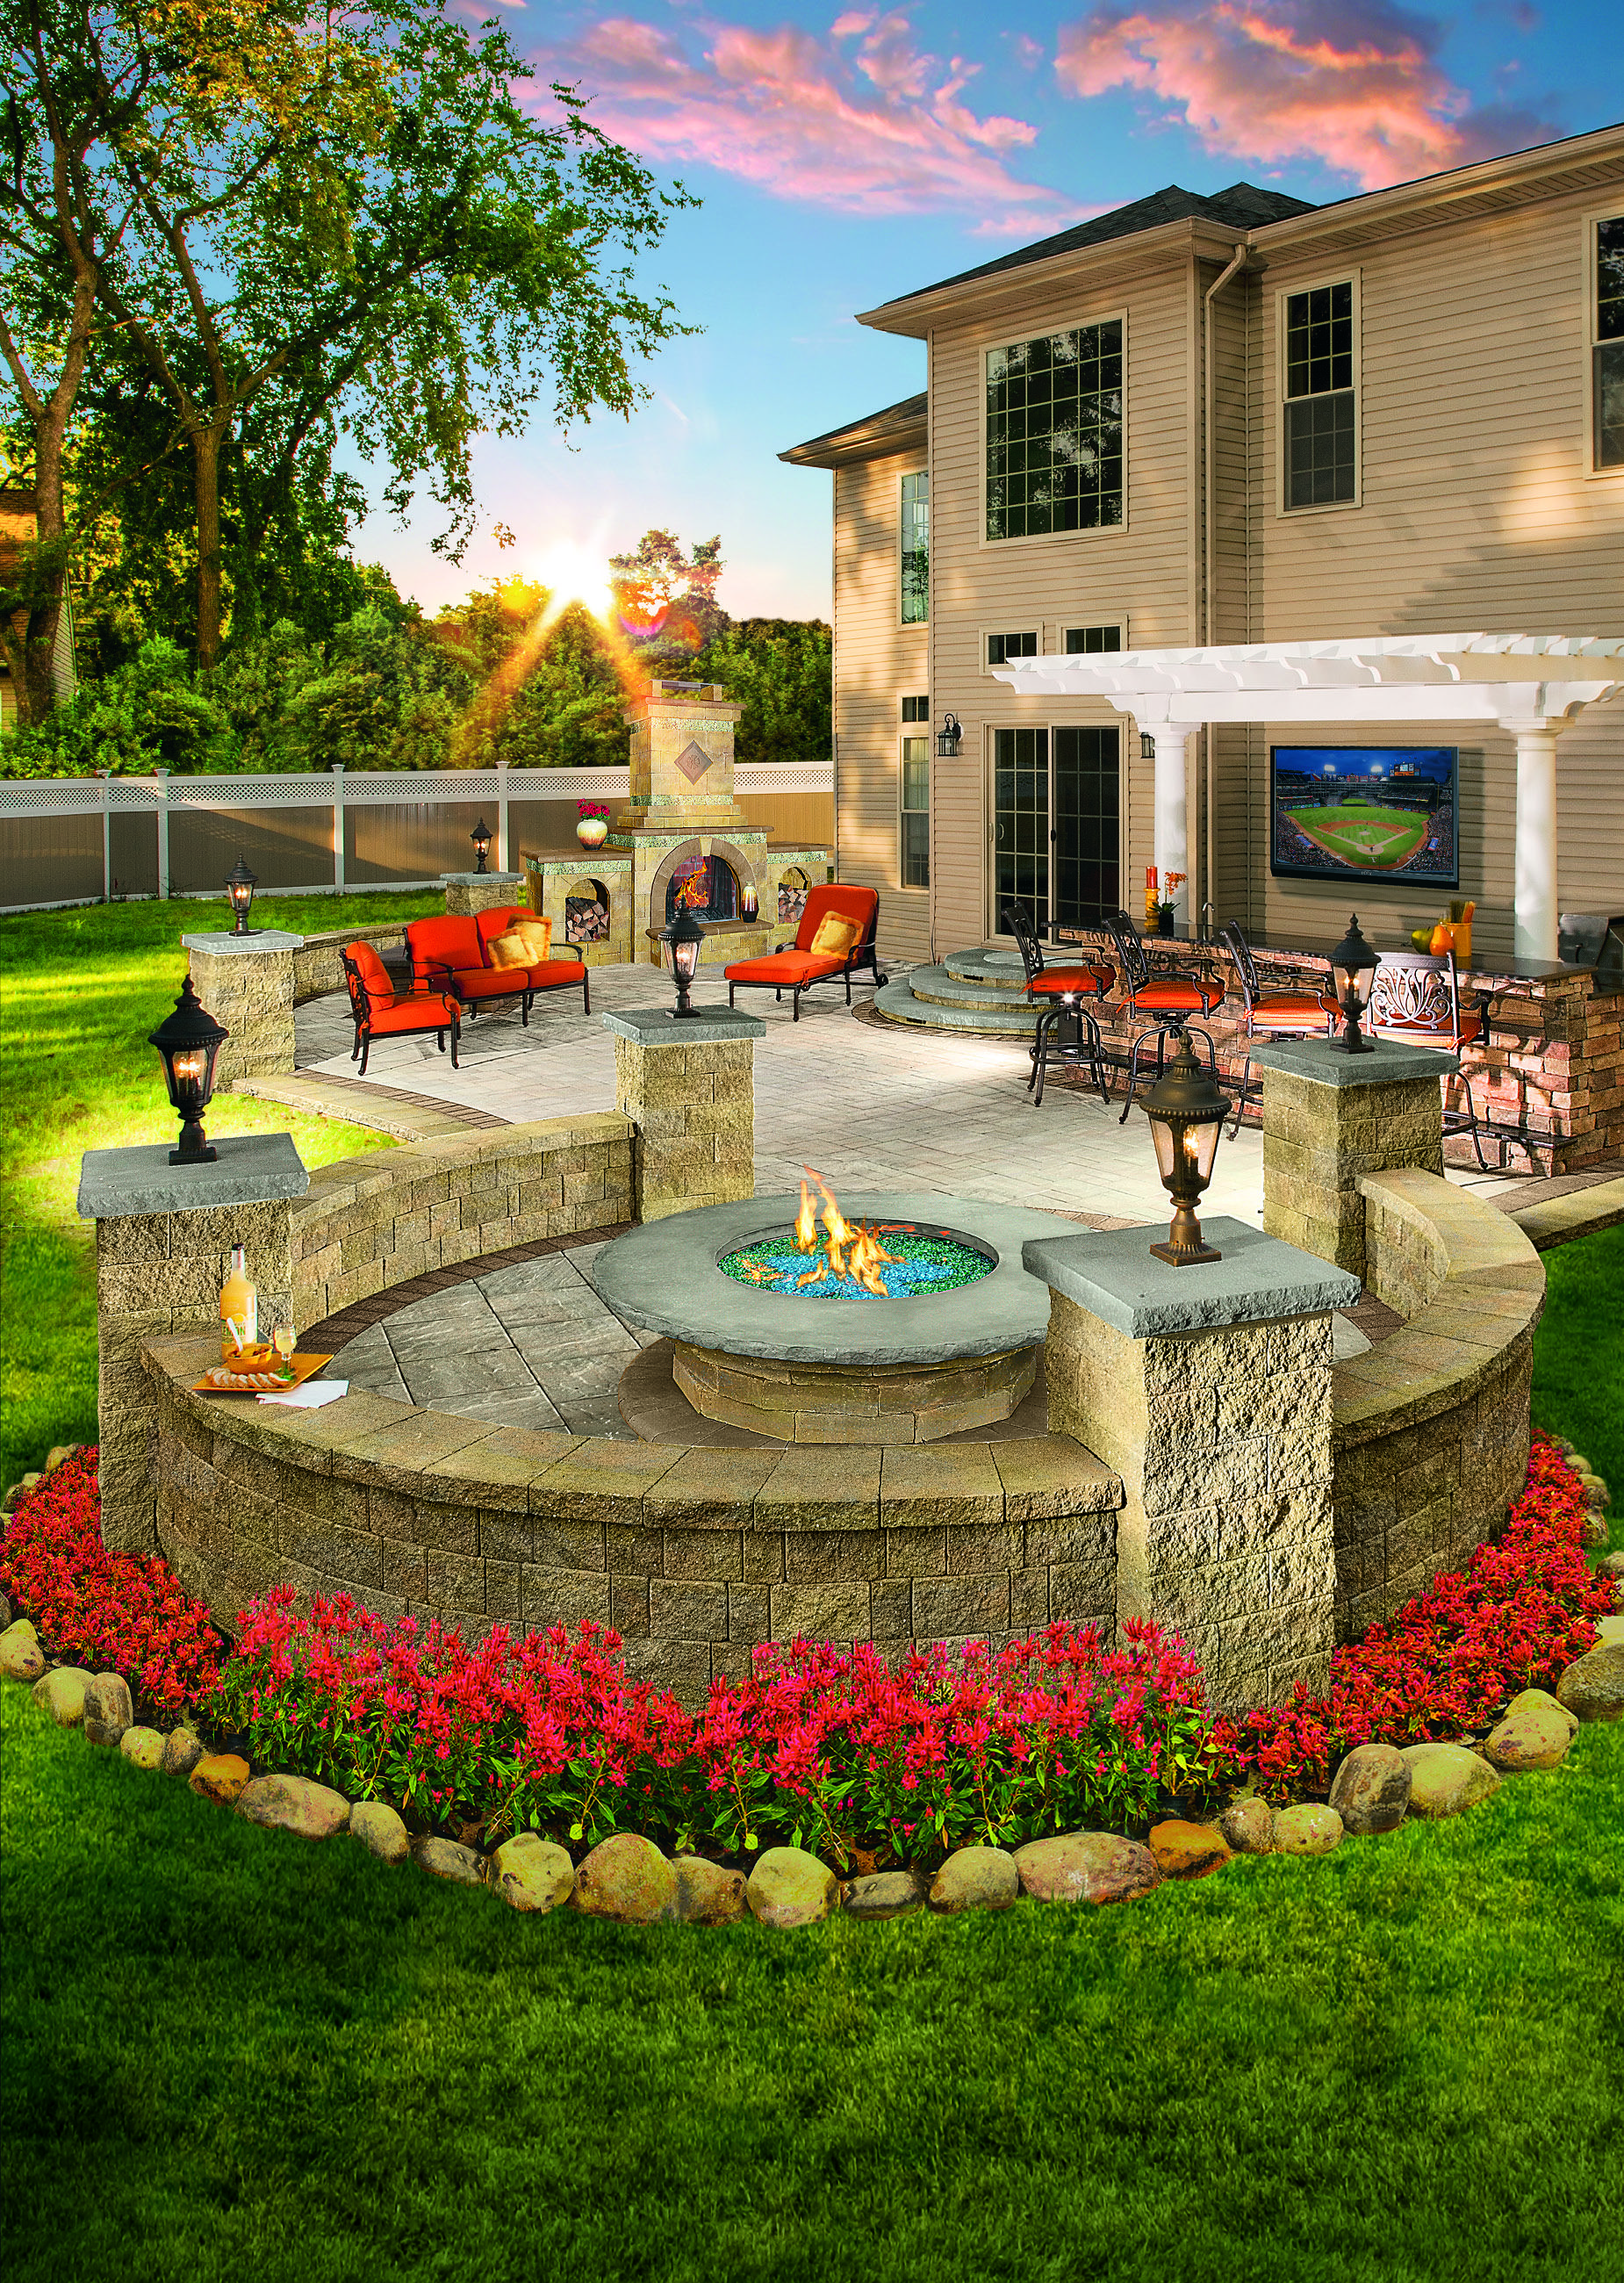 Would you enjoy this outdoor living space in your backyard Pergolas